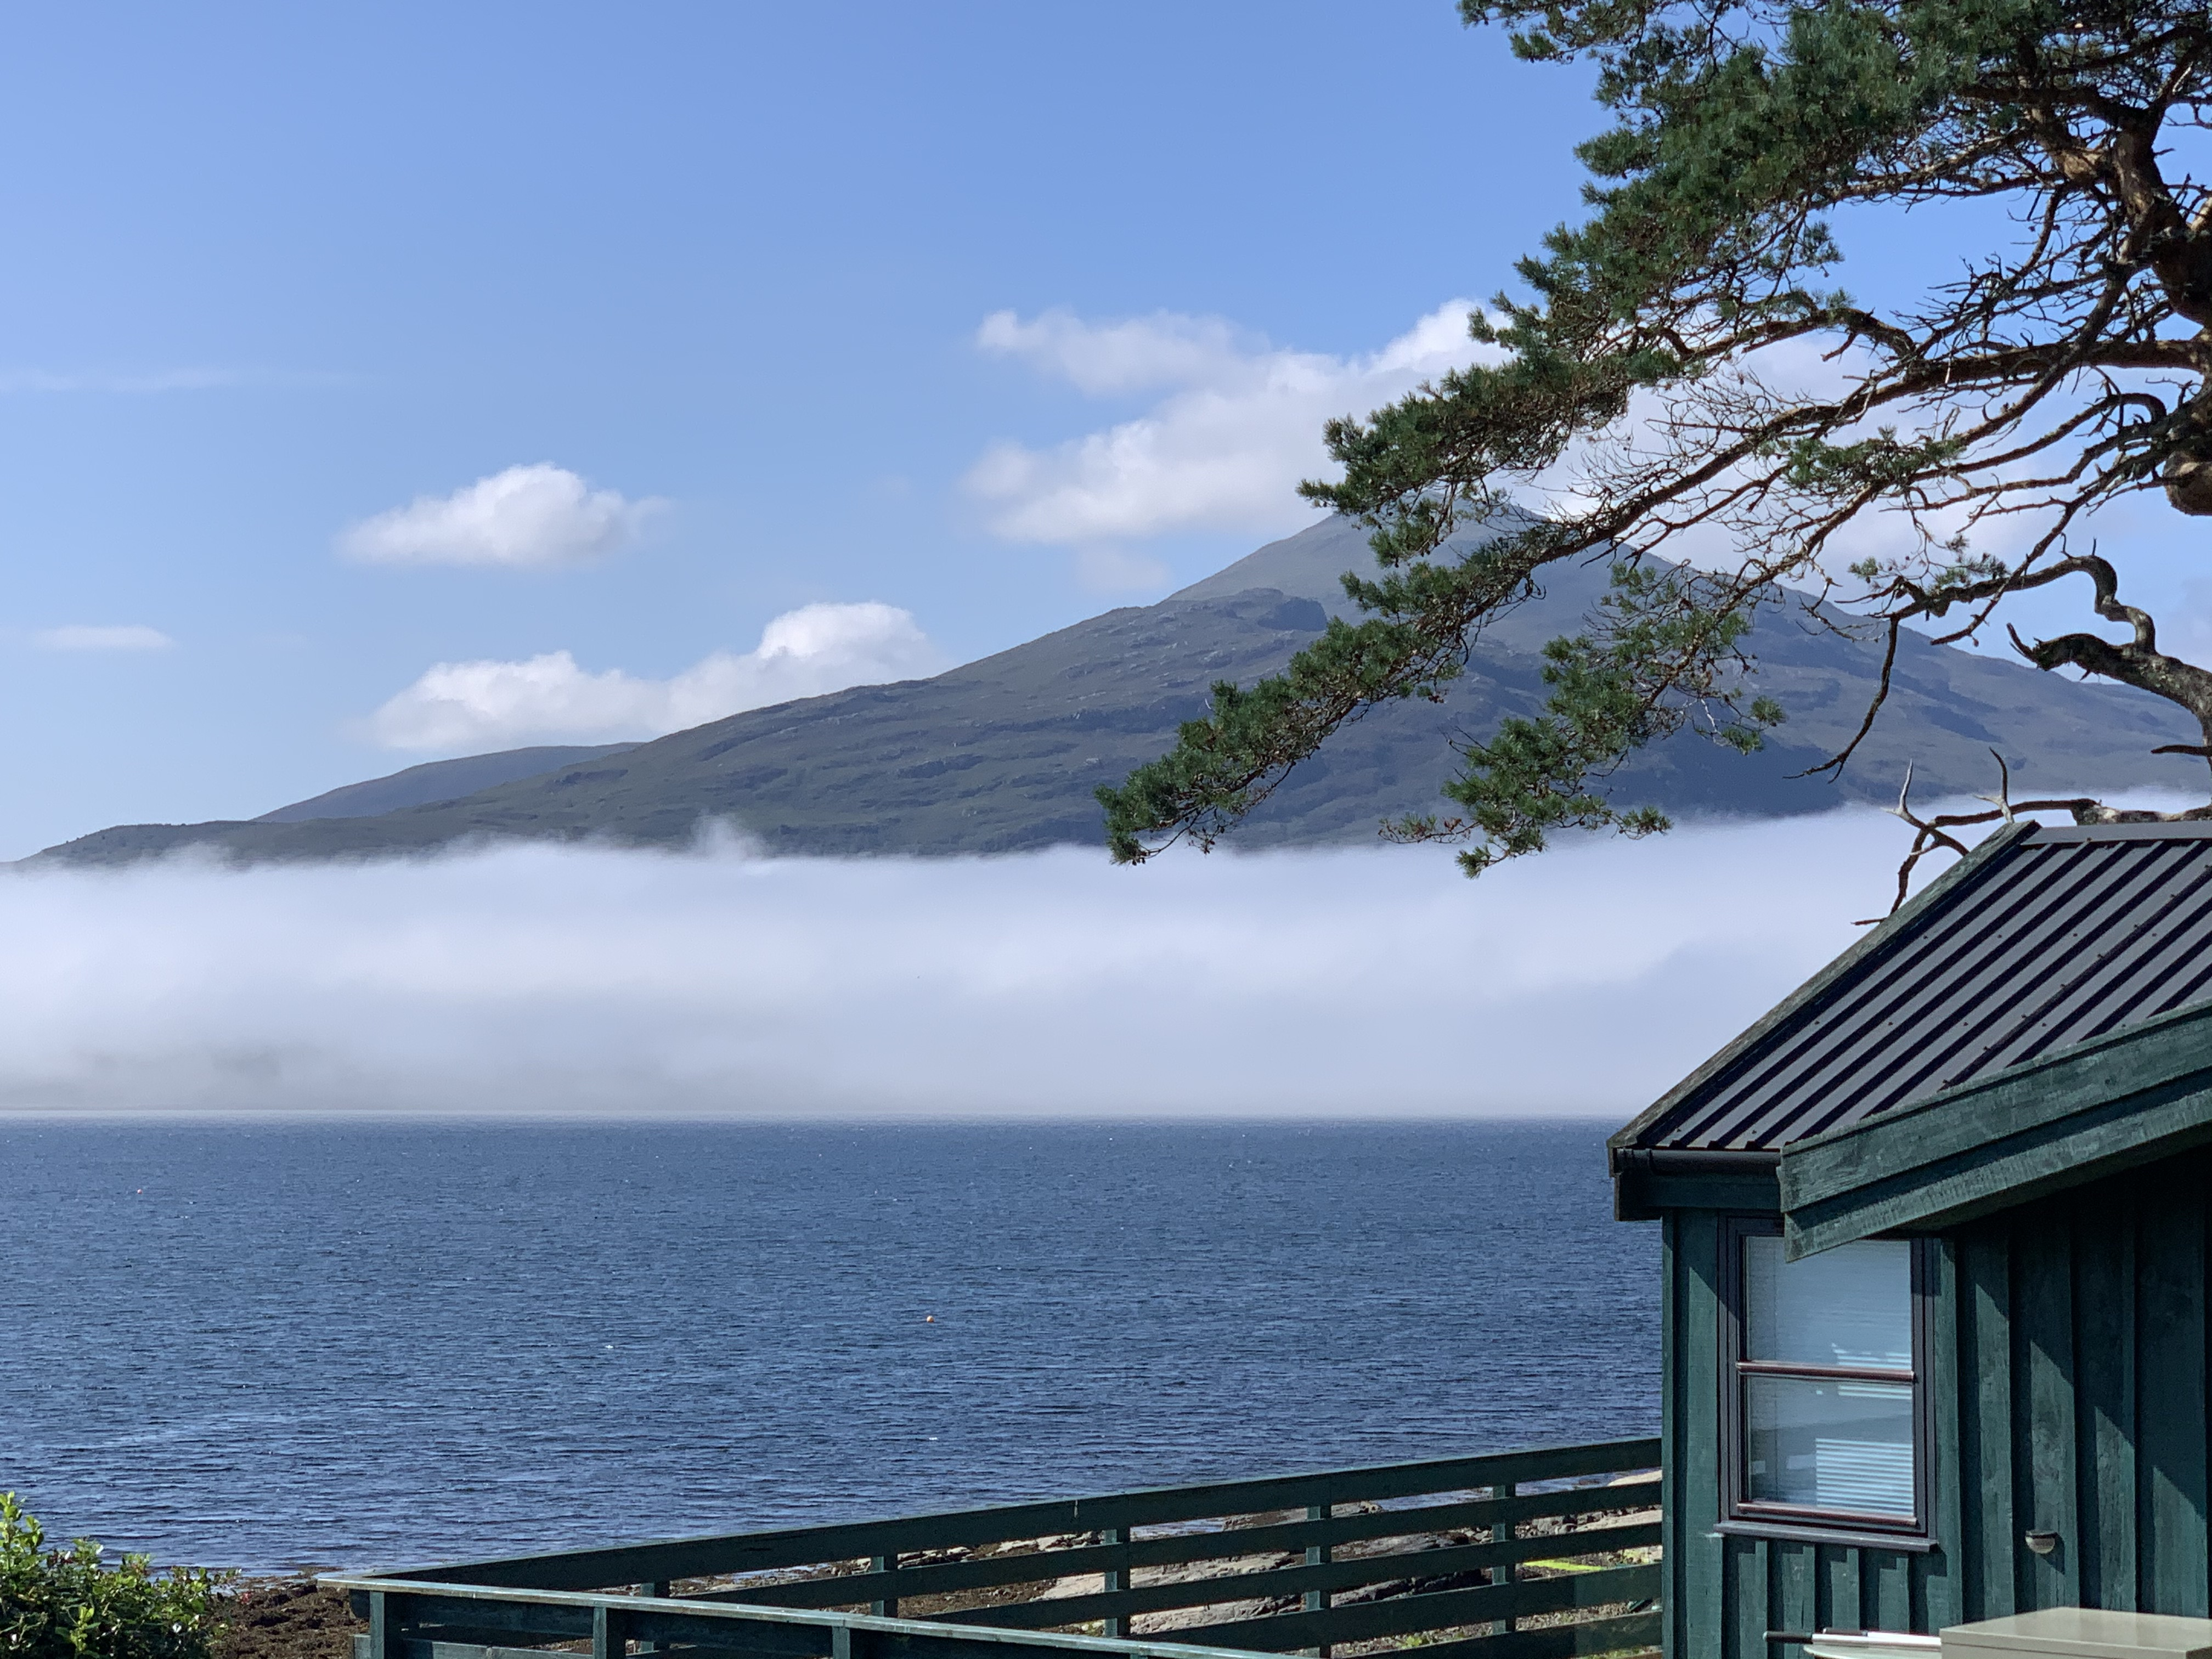 Self catering Chalet with large private deck, metres from the shore line with breath taking views across Loch Alsh overlooking the Isle of Skye.